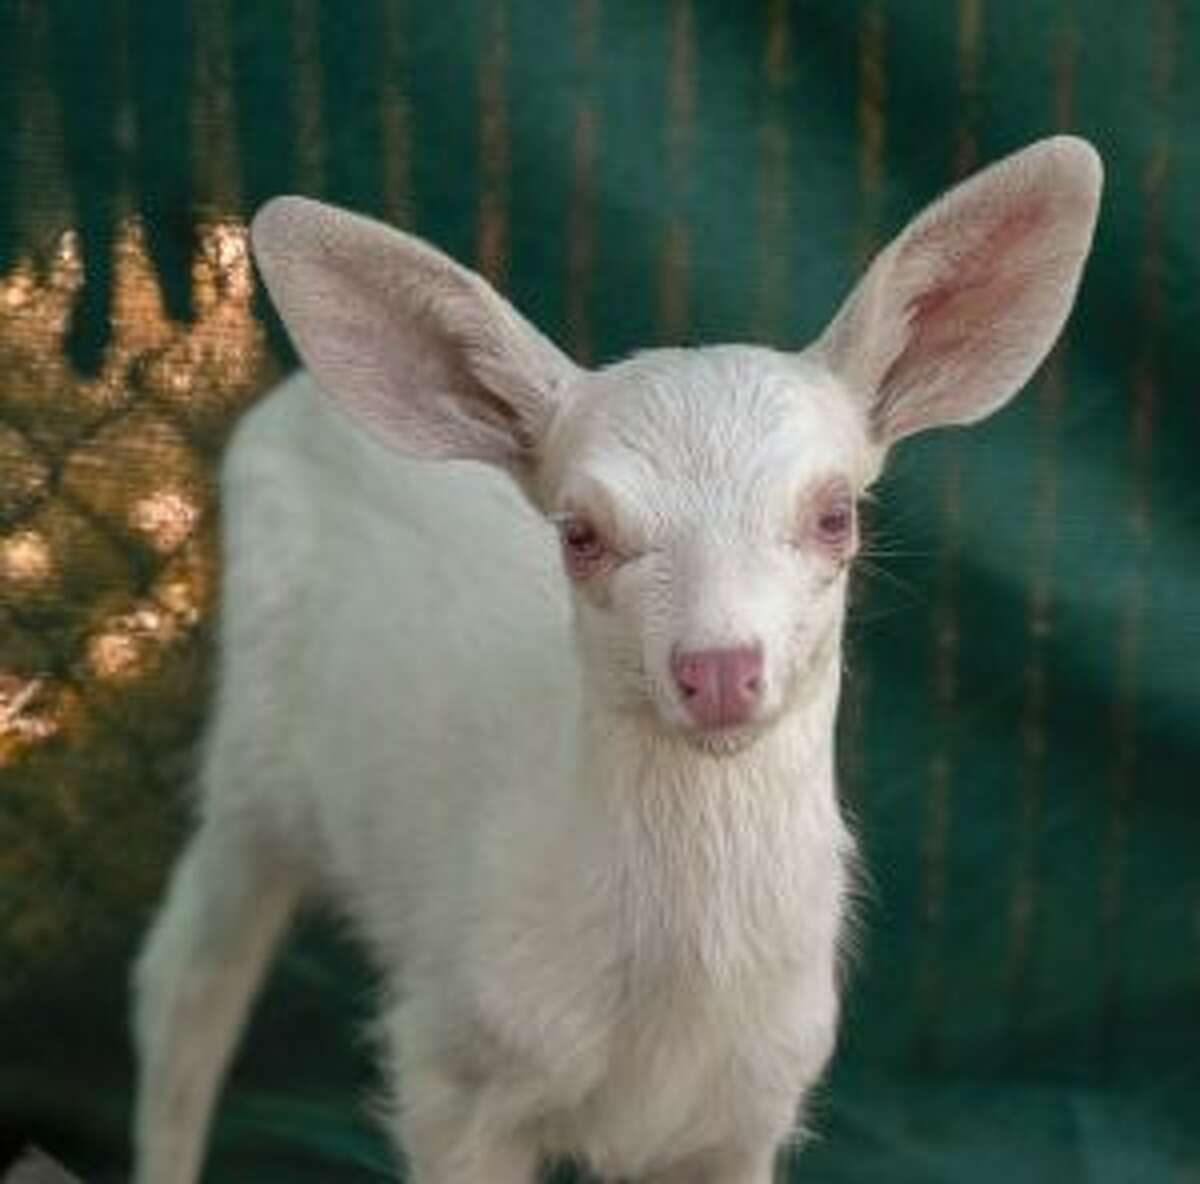 An albino fawn, who was rescued by a trucker in Woodland, California is cared for at the Kindred Spirits Fawn Rescue Thursday, May 30, 2019 in Loomis, California. She will be released back into the wild in the fall, after hunting season. (Lezlie Sterling/The Sacramento Bee via AP)